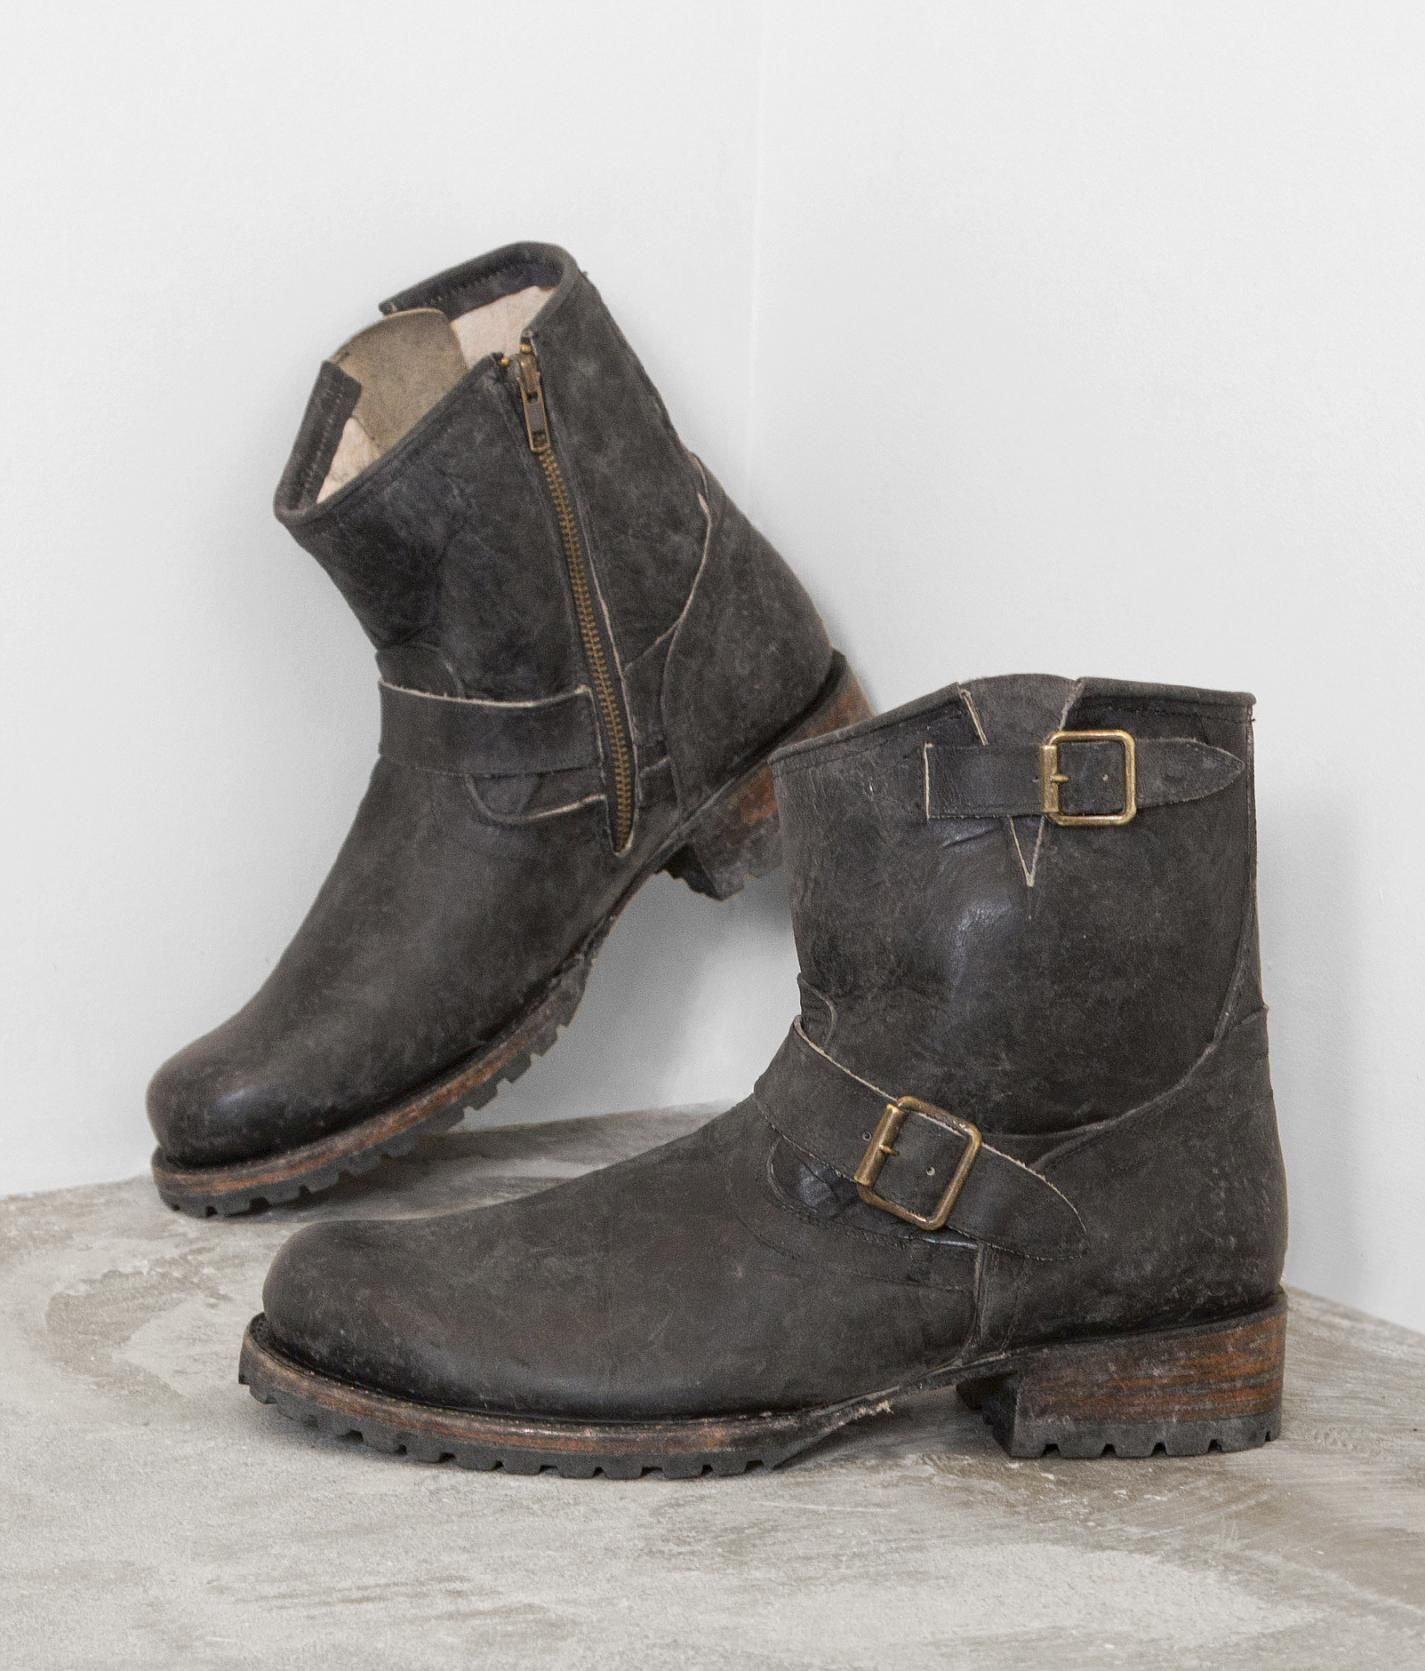 502e6a59f79 Look who final made Men s Boots  Freebird by Steven  Engine Boot   ...